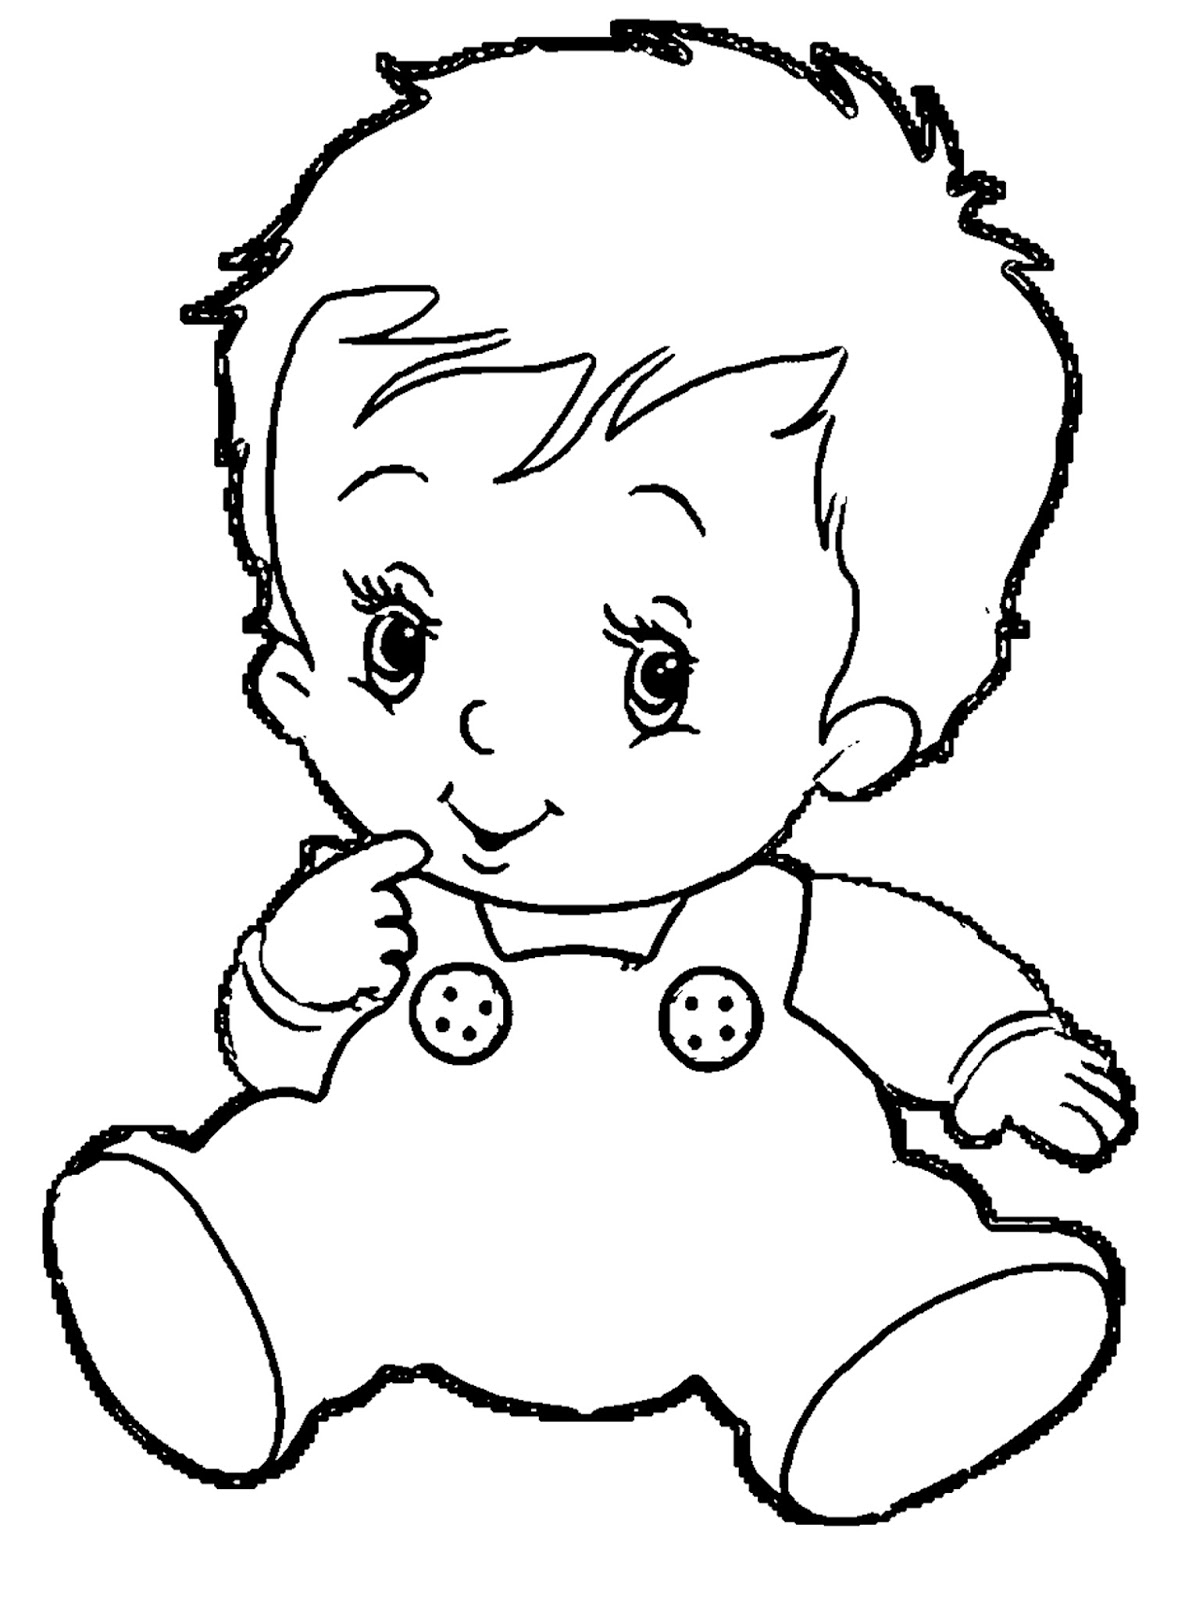 Monochrome clipart baby Clip and baby Baby black